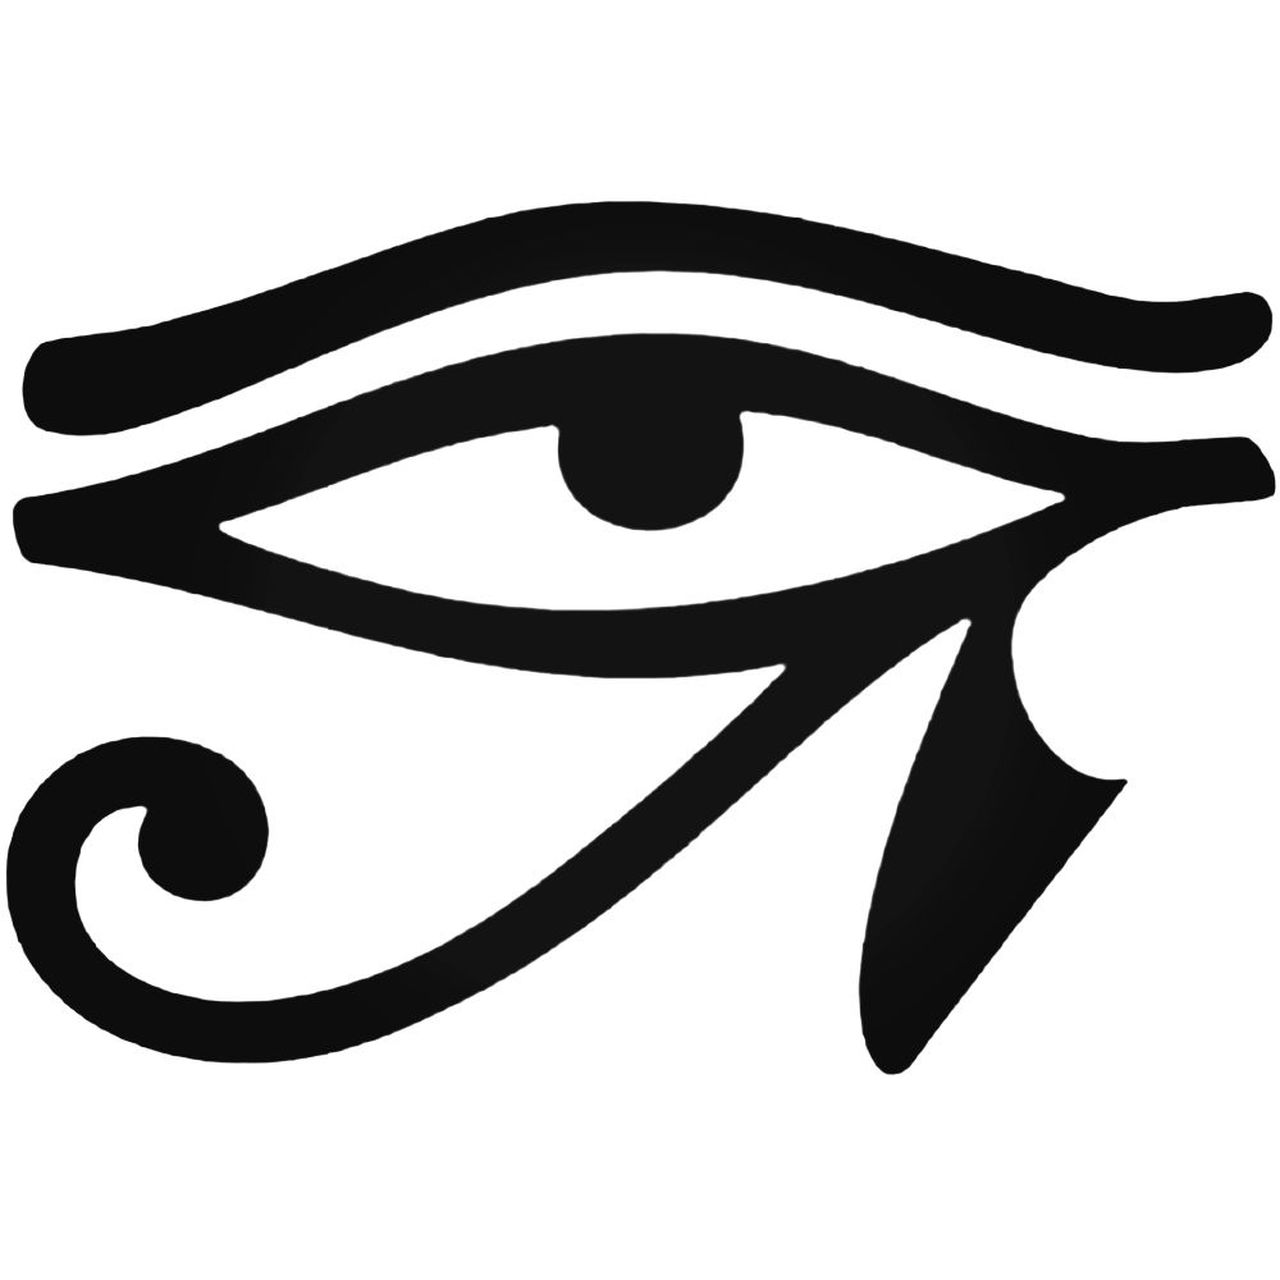 Egyptian Hieroglyphic Eye Of Horus Decal Sticker.